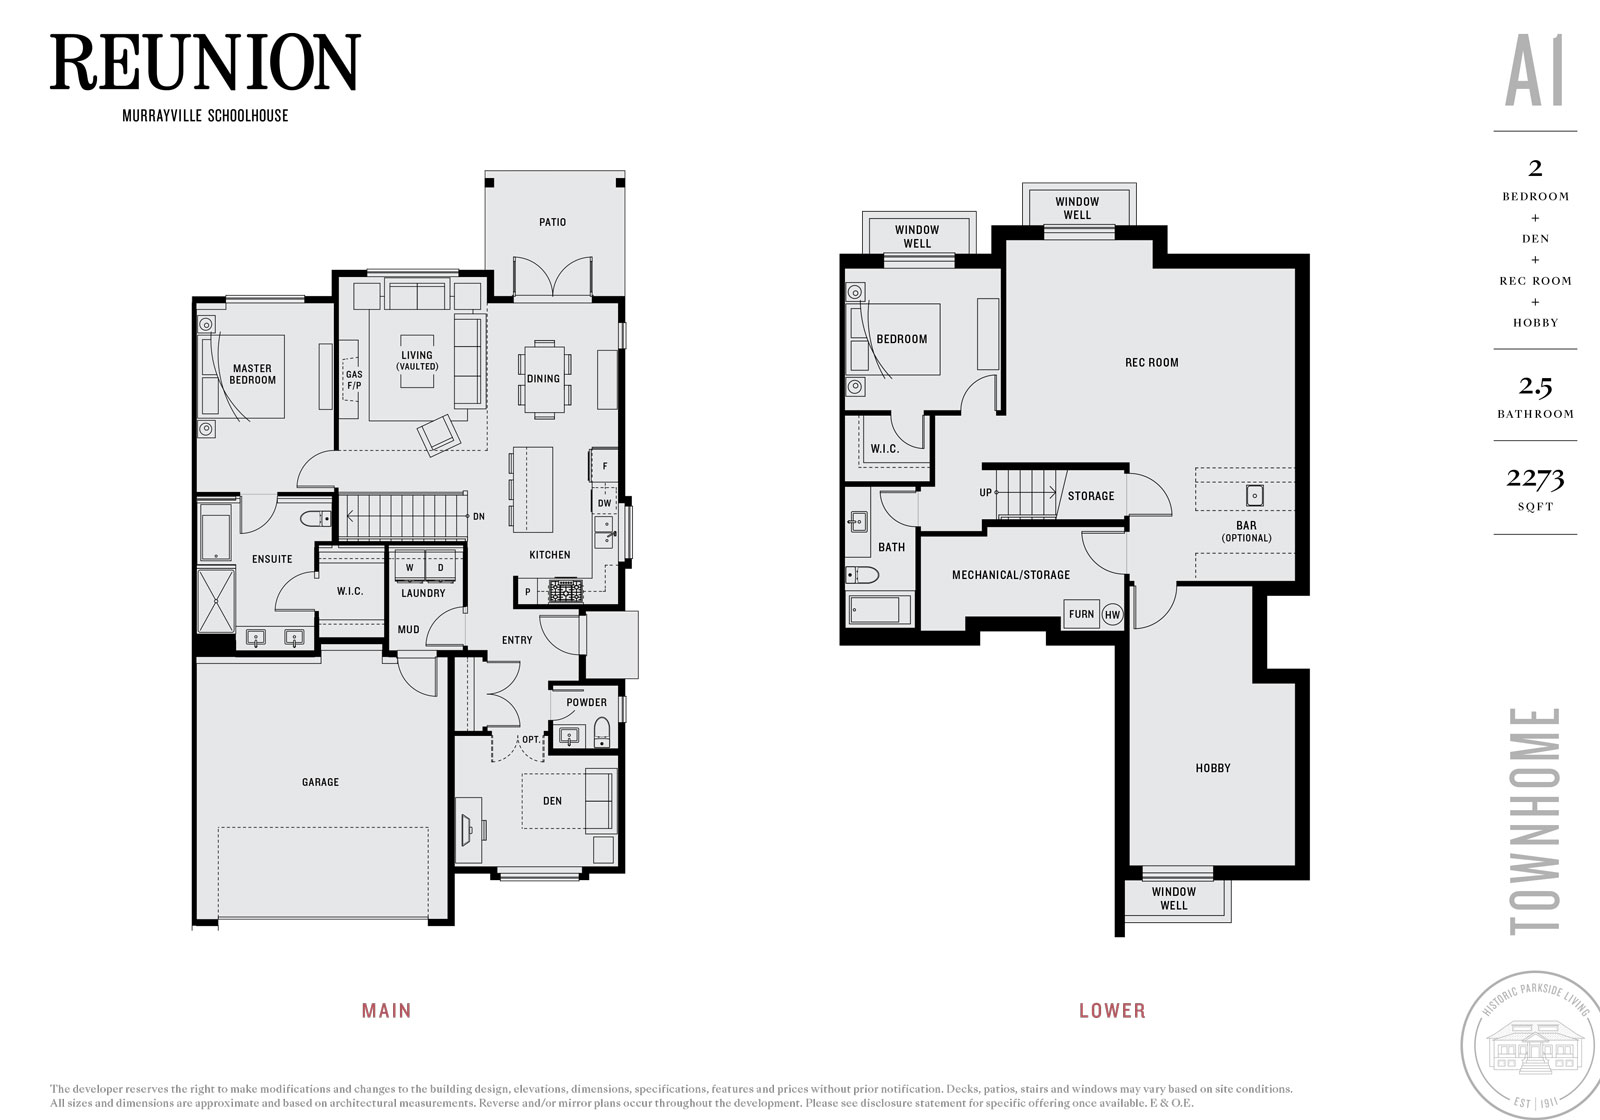 Townhouse A1